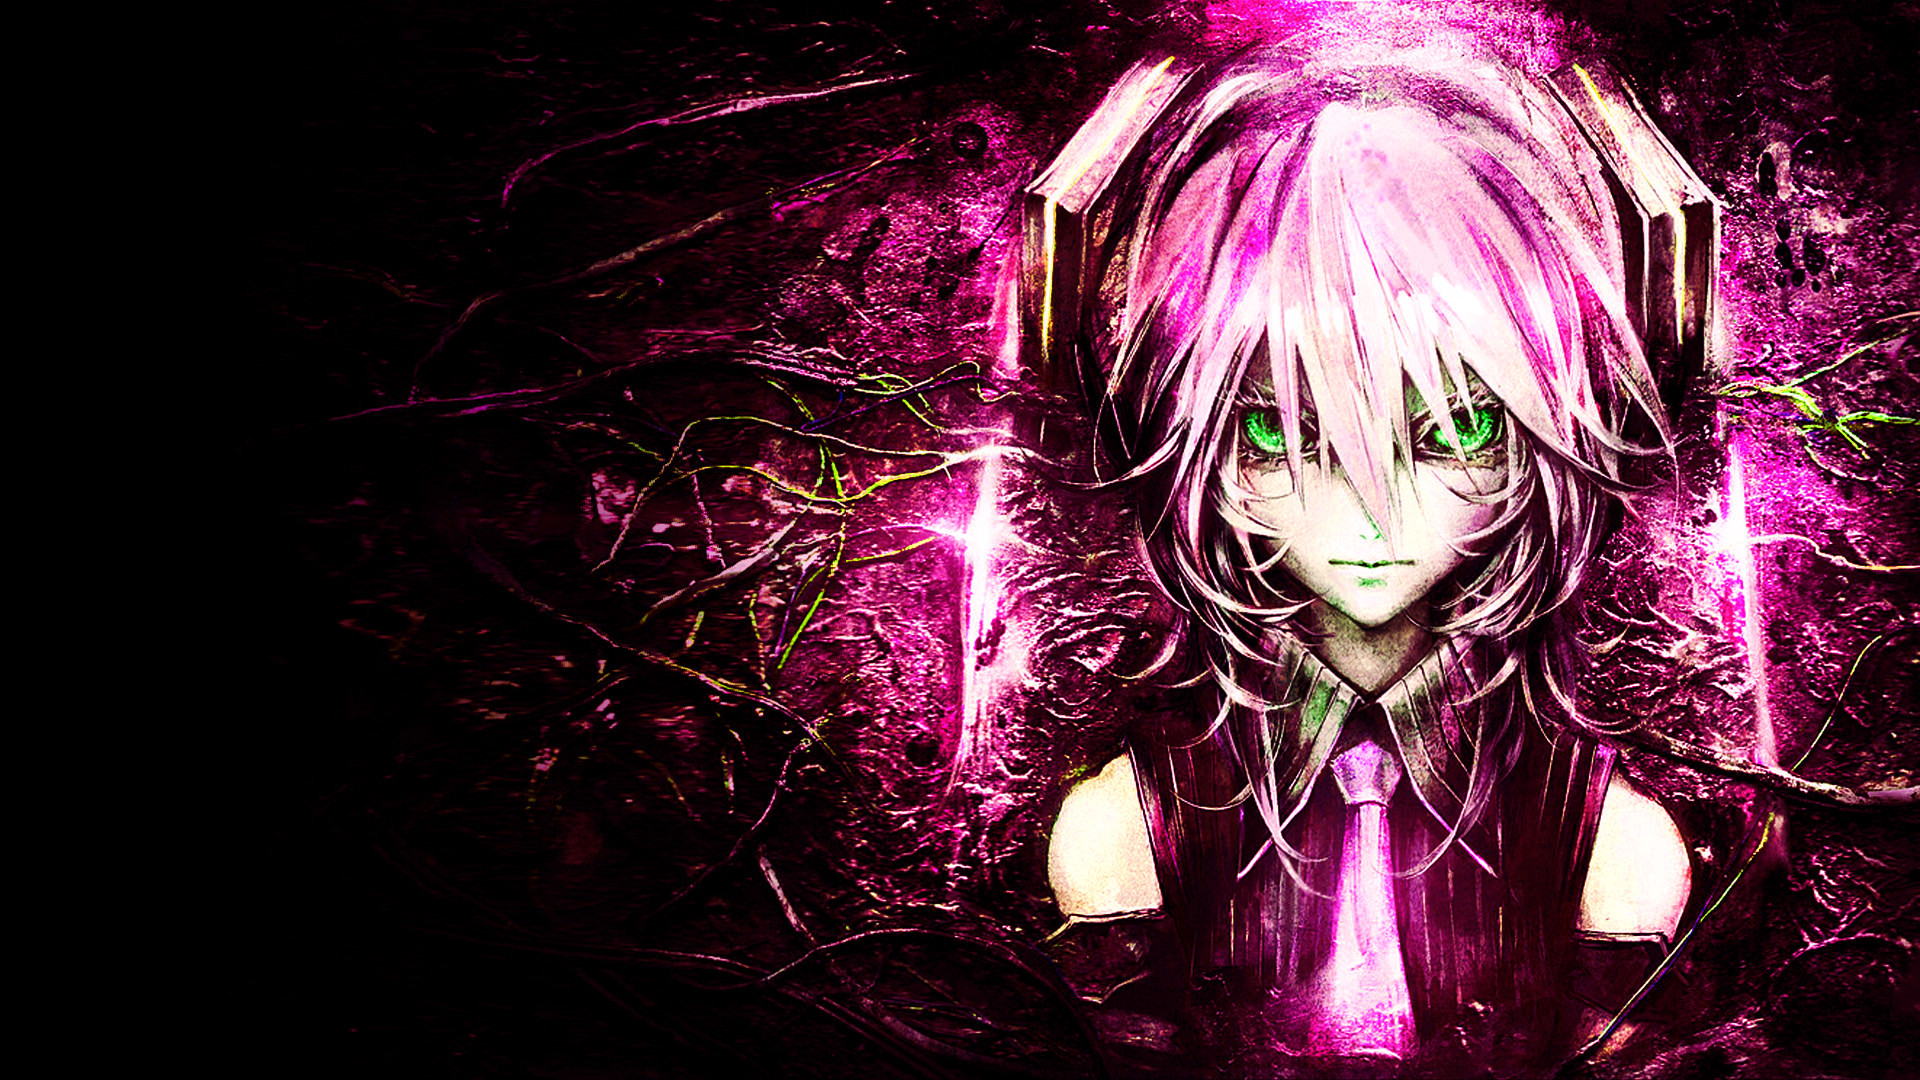 1920x1080 Bright Pink and Black Vocaloid Anime Background